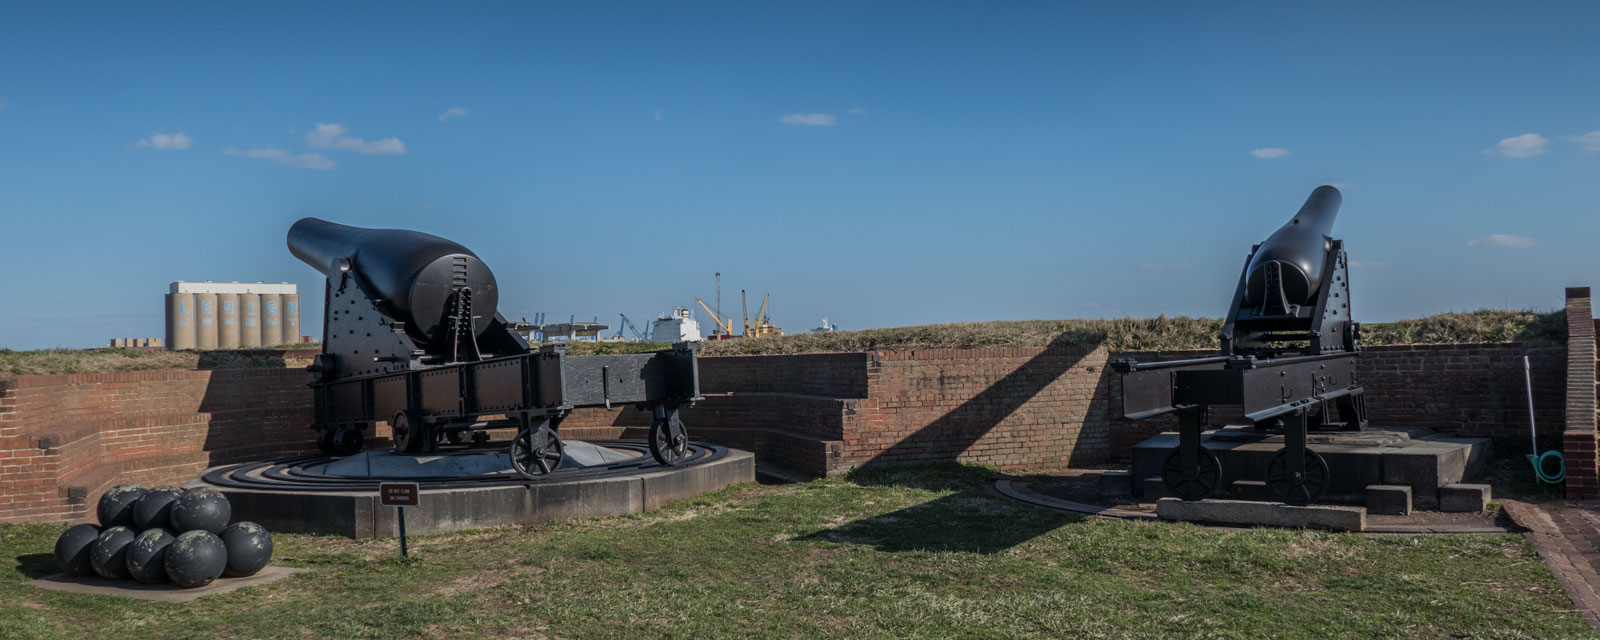 Fort McHenry Museum Baltimore Maryland